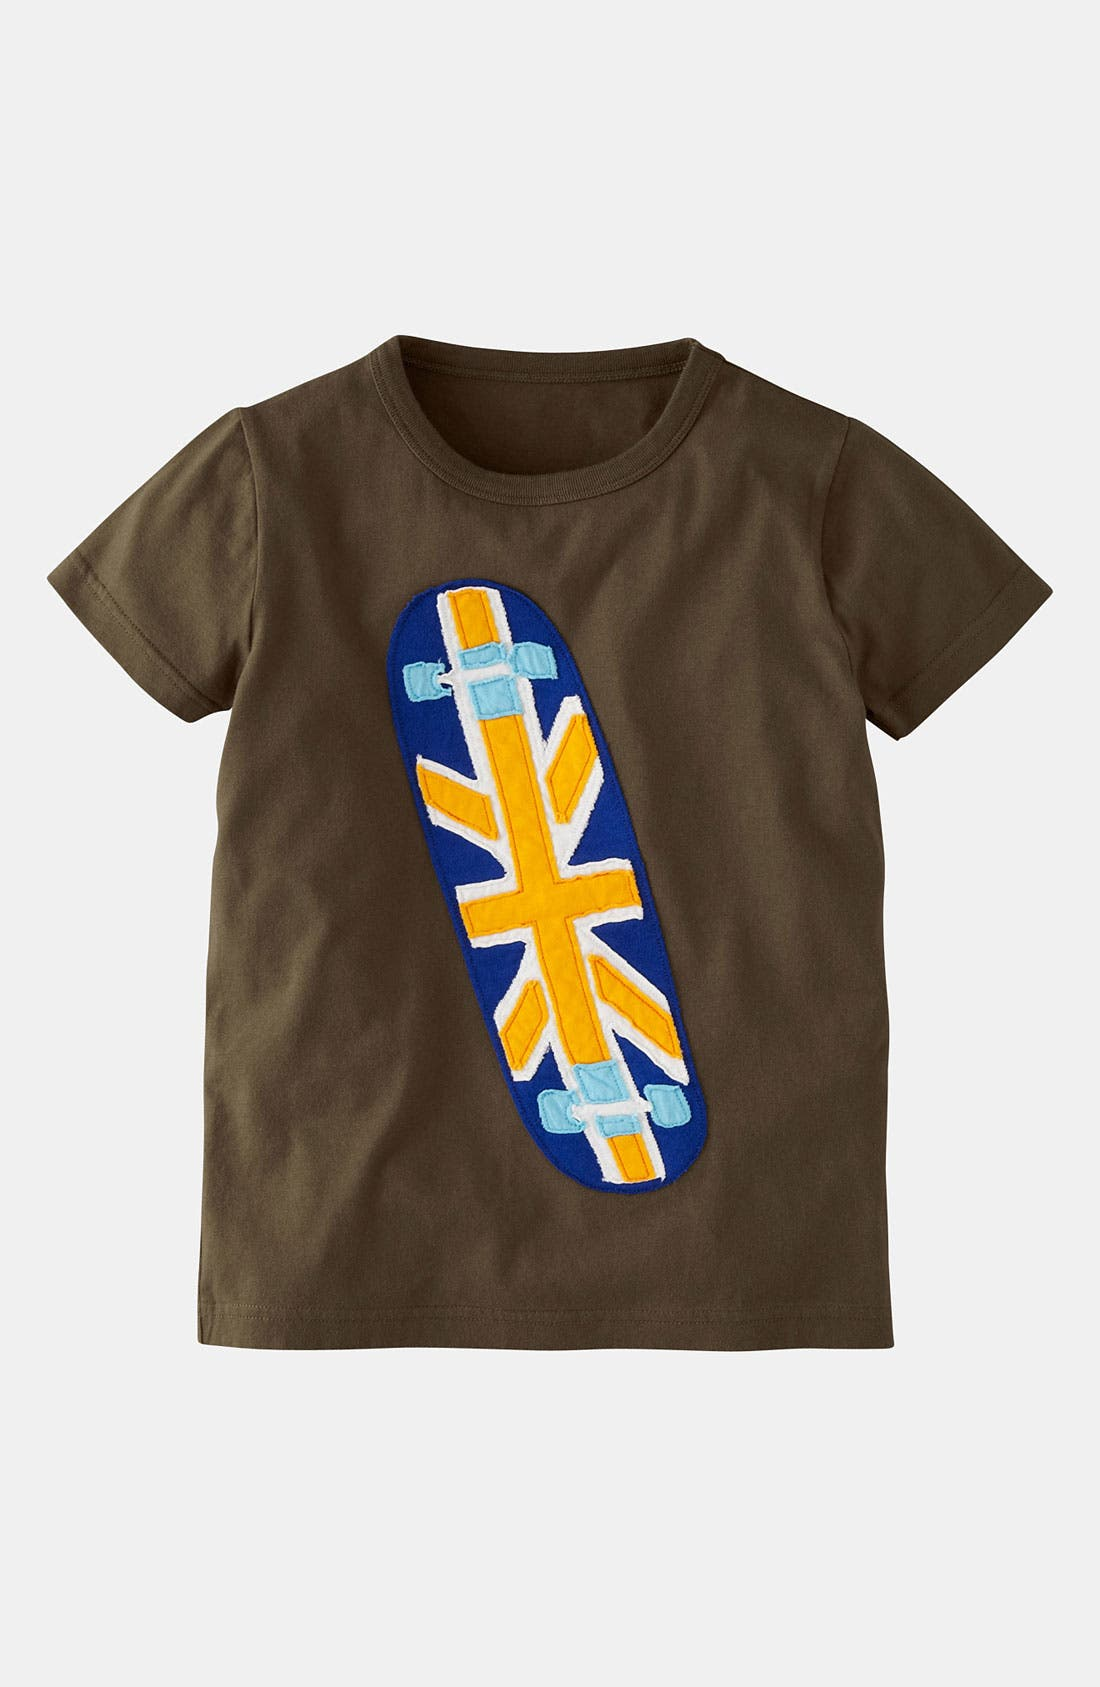 Alternate Image 1 Selected - Mini Boden 'Vehicle' T-Shirt (Little Boys & Big Boys)